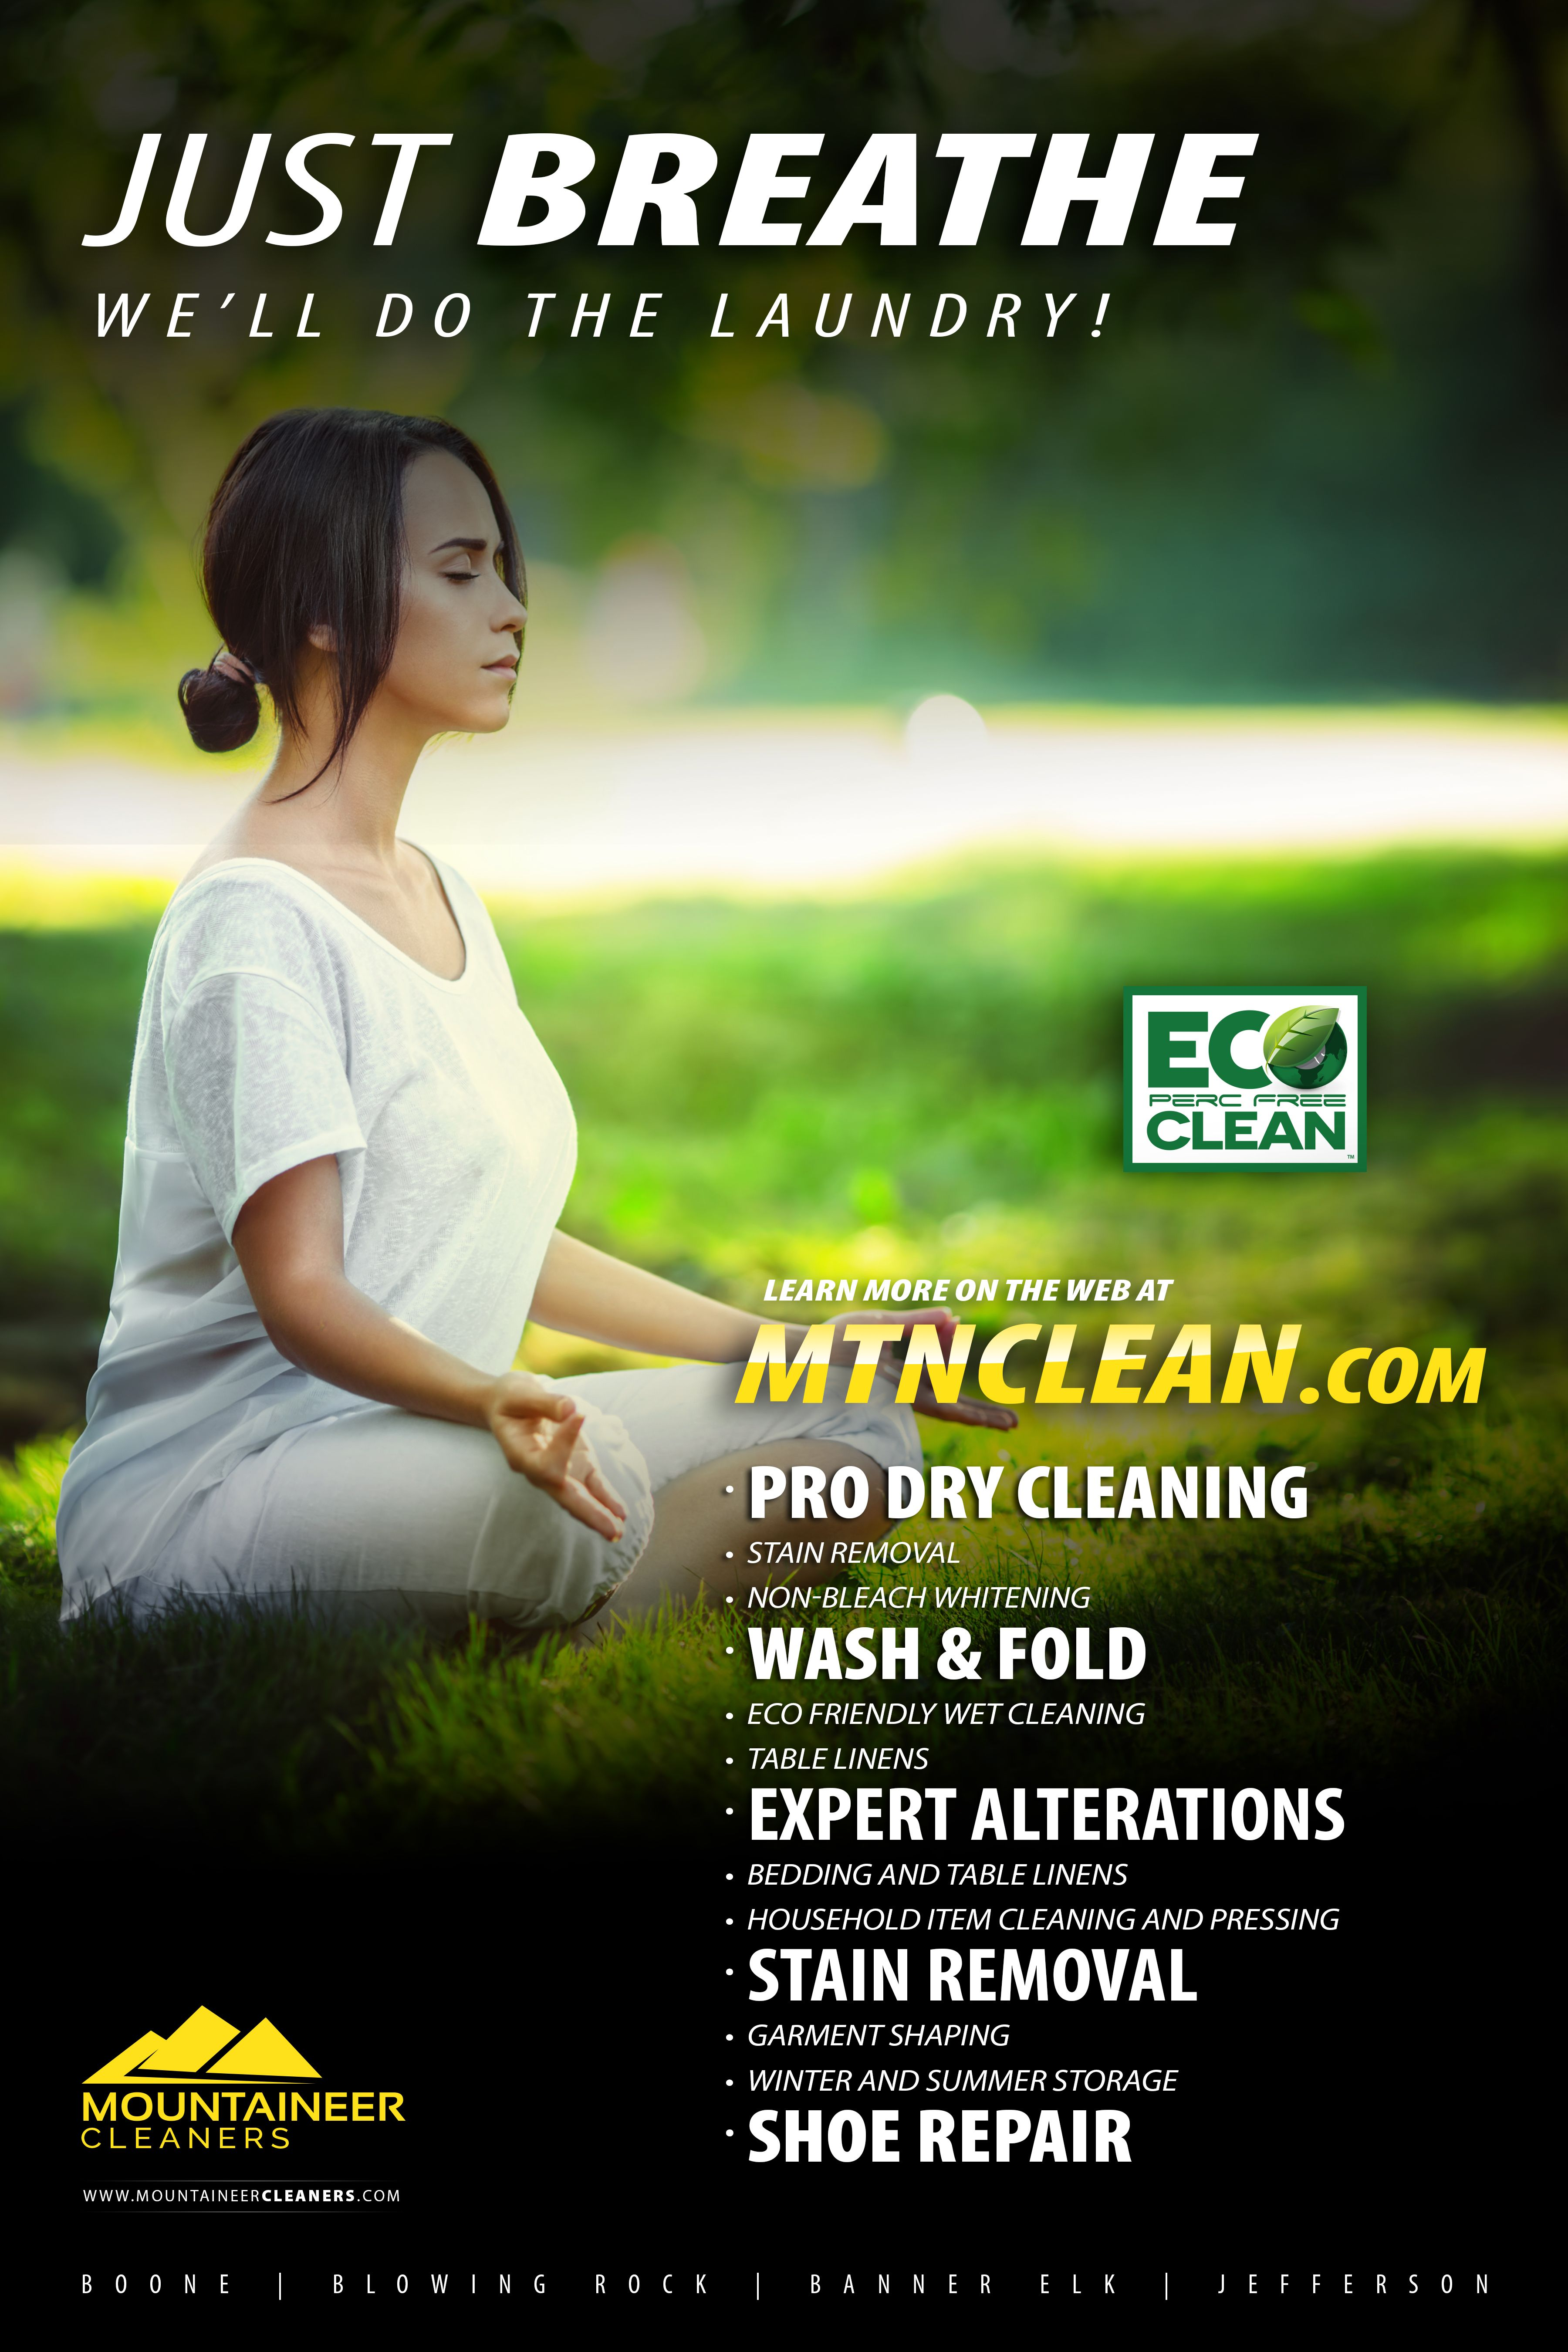 Mountaineer Cleaners Environmentally Friendly Dry Cleaning Poster Design Wash And Fold Poster Design Laundry Alternative